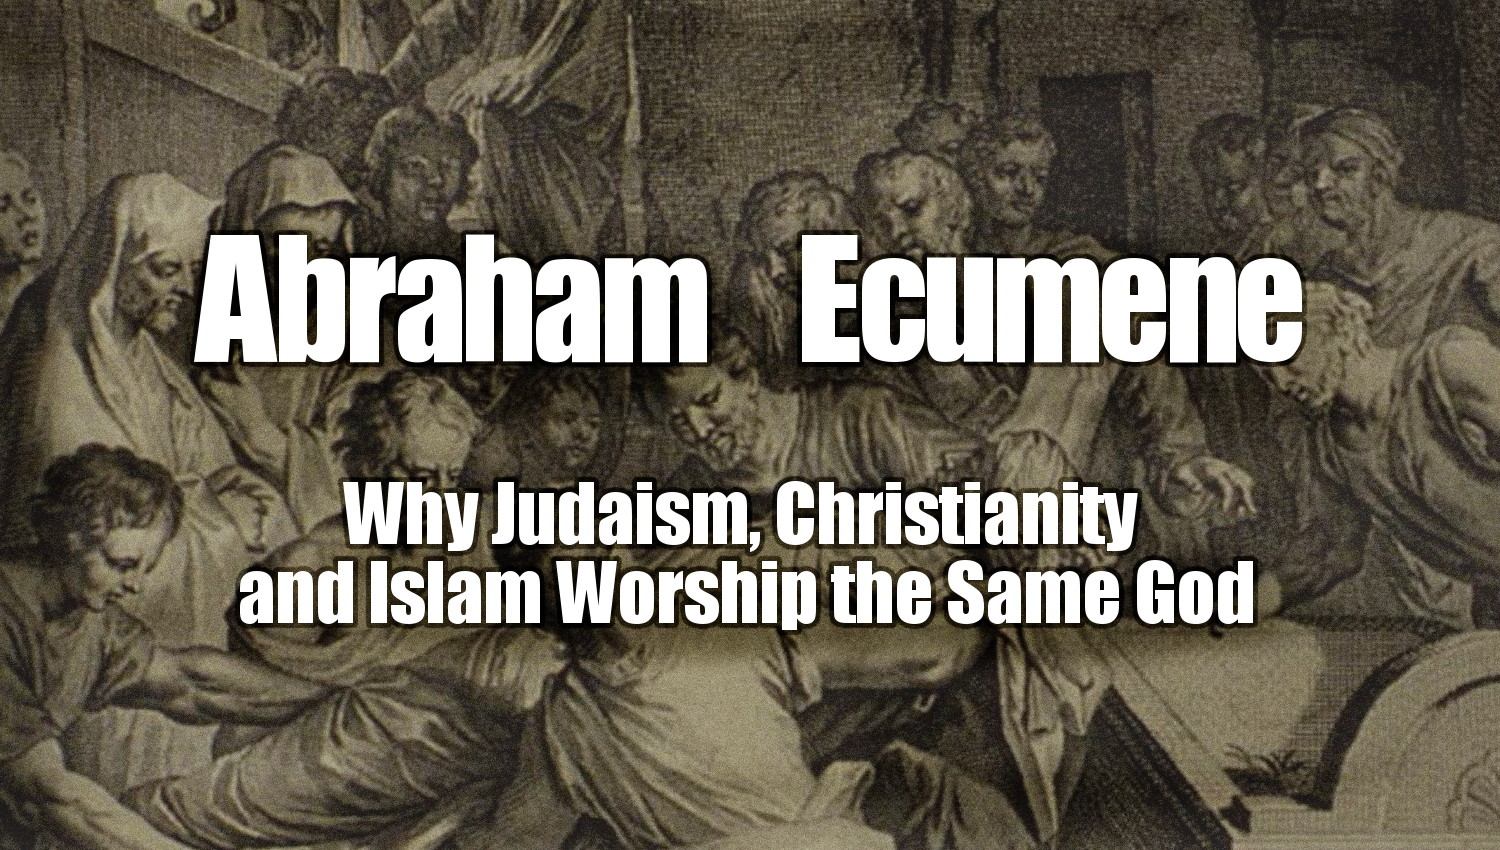 an examination of allah el and jehovah as the same god in muslim judaism and christianity He is same god in christianity andjudaism how do allah relate to the god of christians and jews how does allah relate to the god of the christians and the.